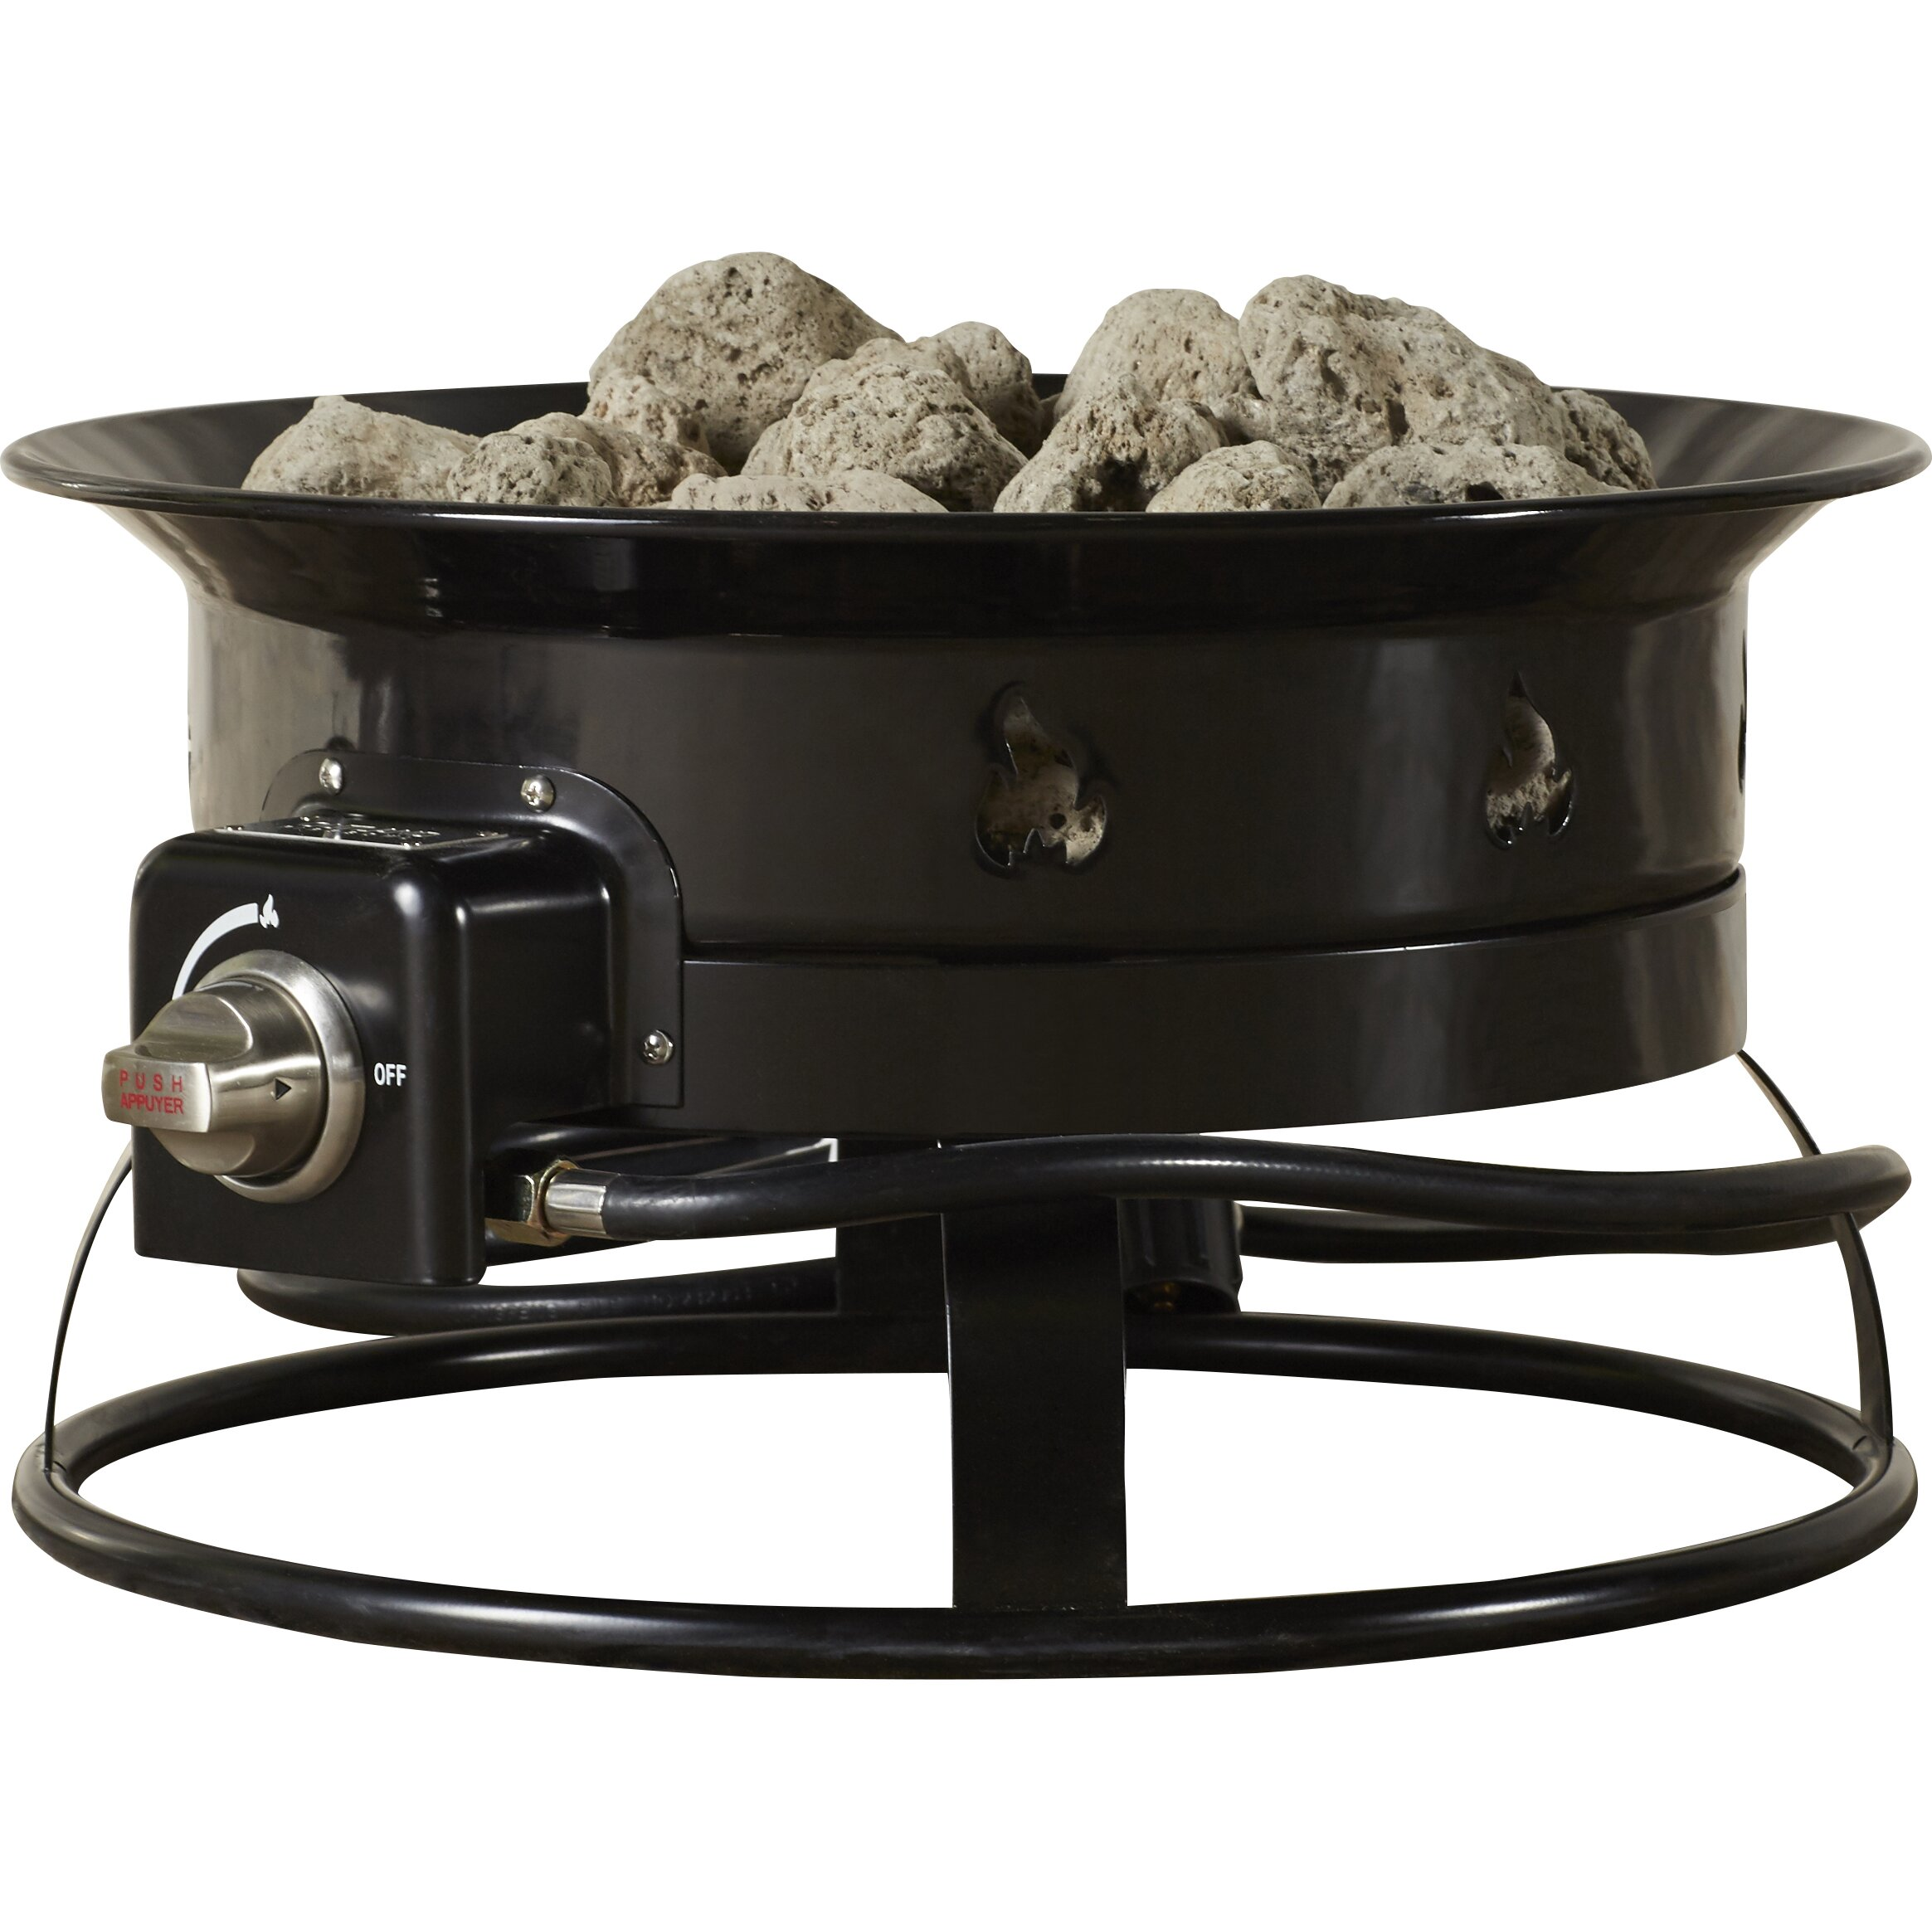 Portable Outdoor Kitchens: Heininger Heininger Portable Propane Outdoor Fire Pit